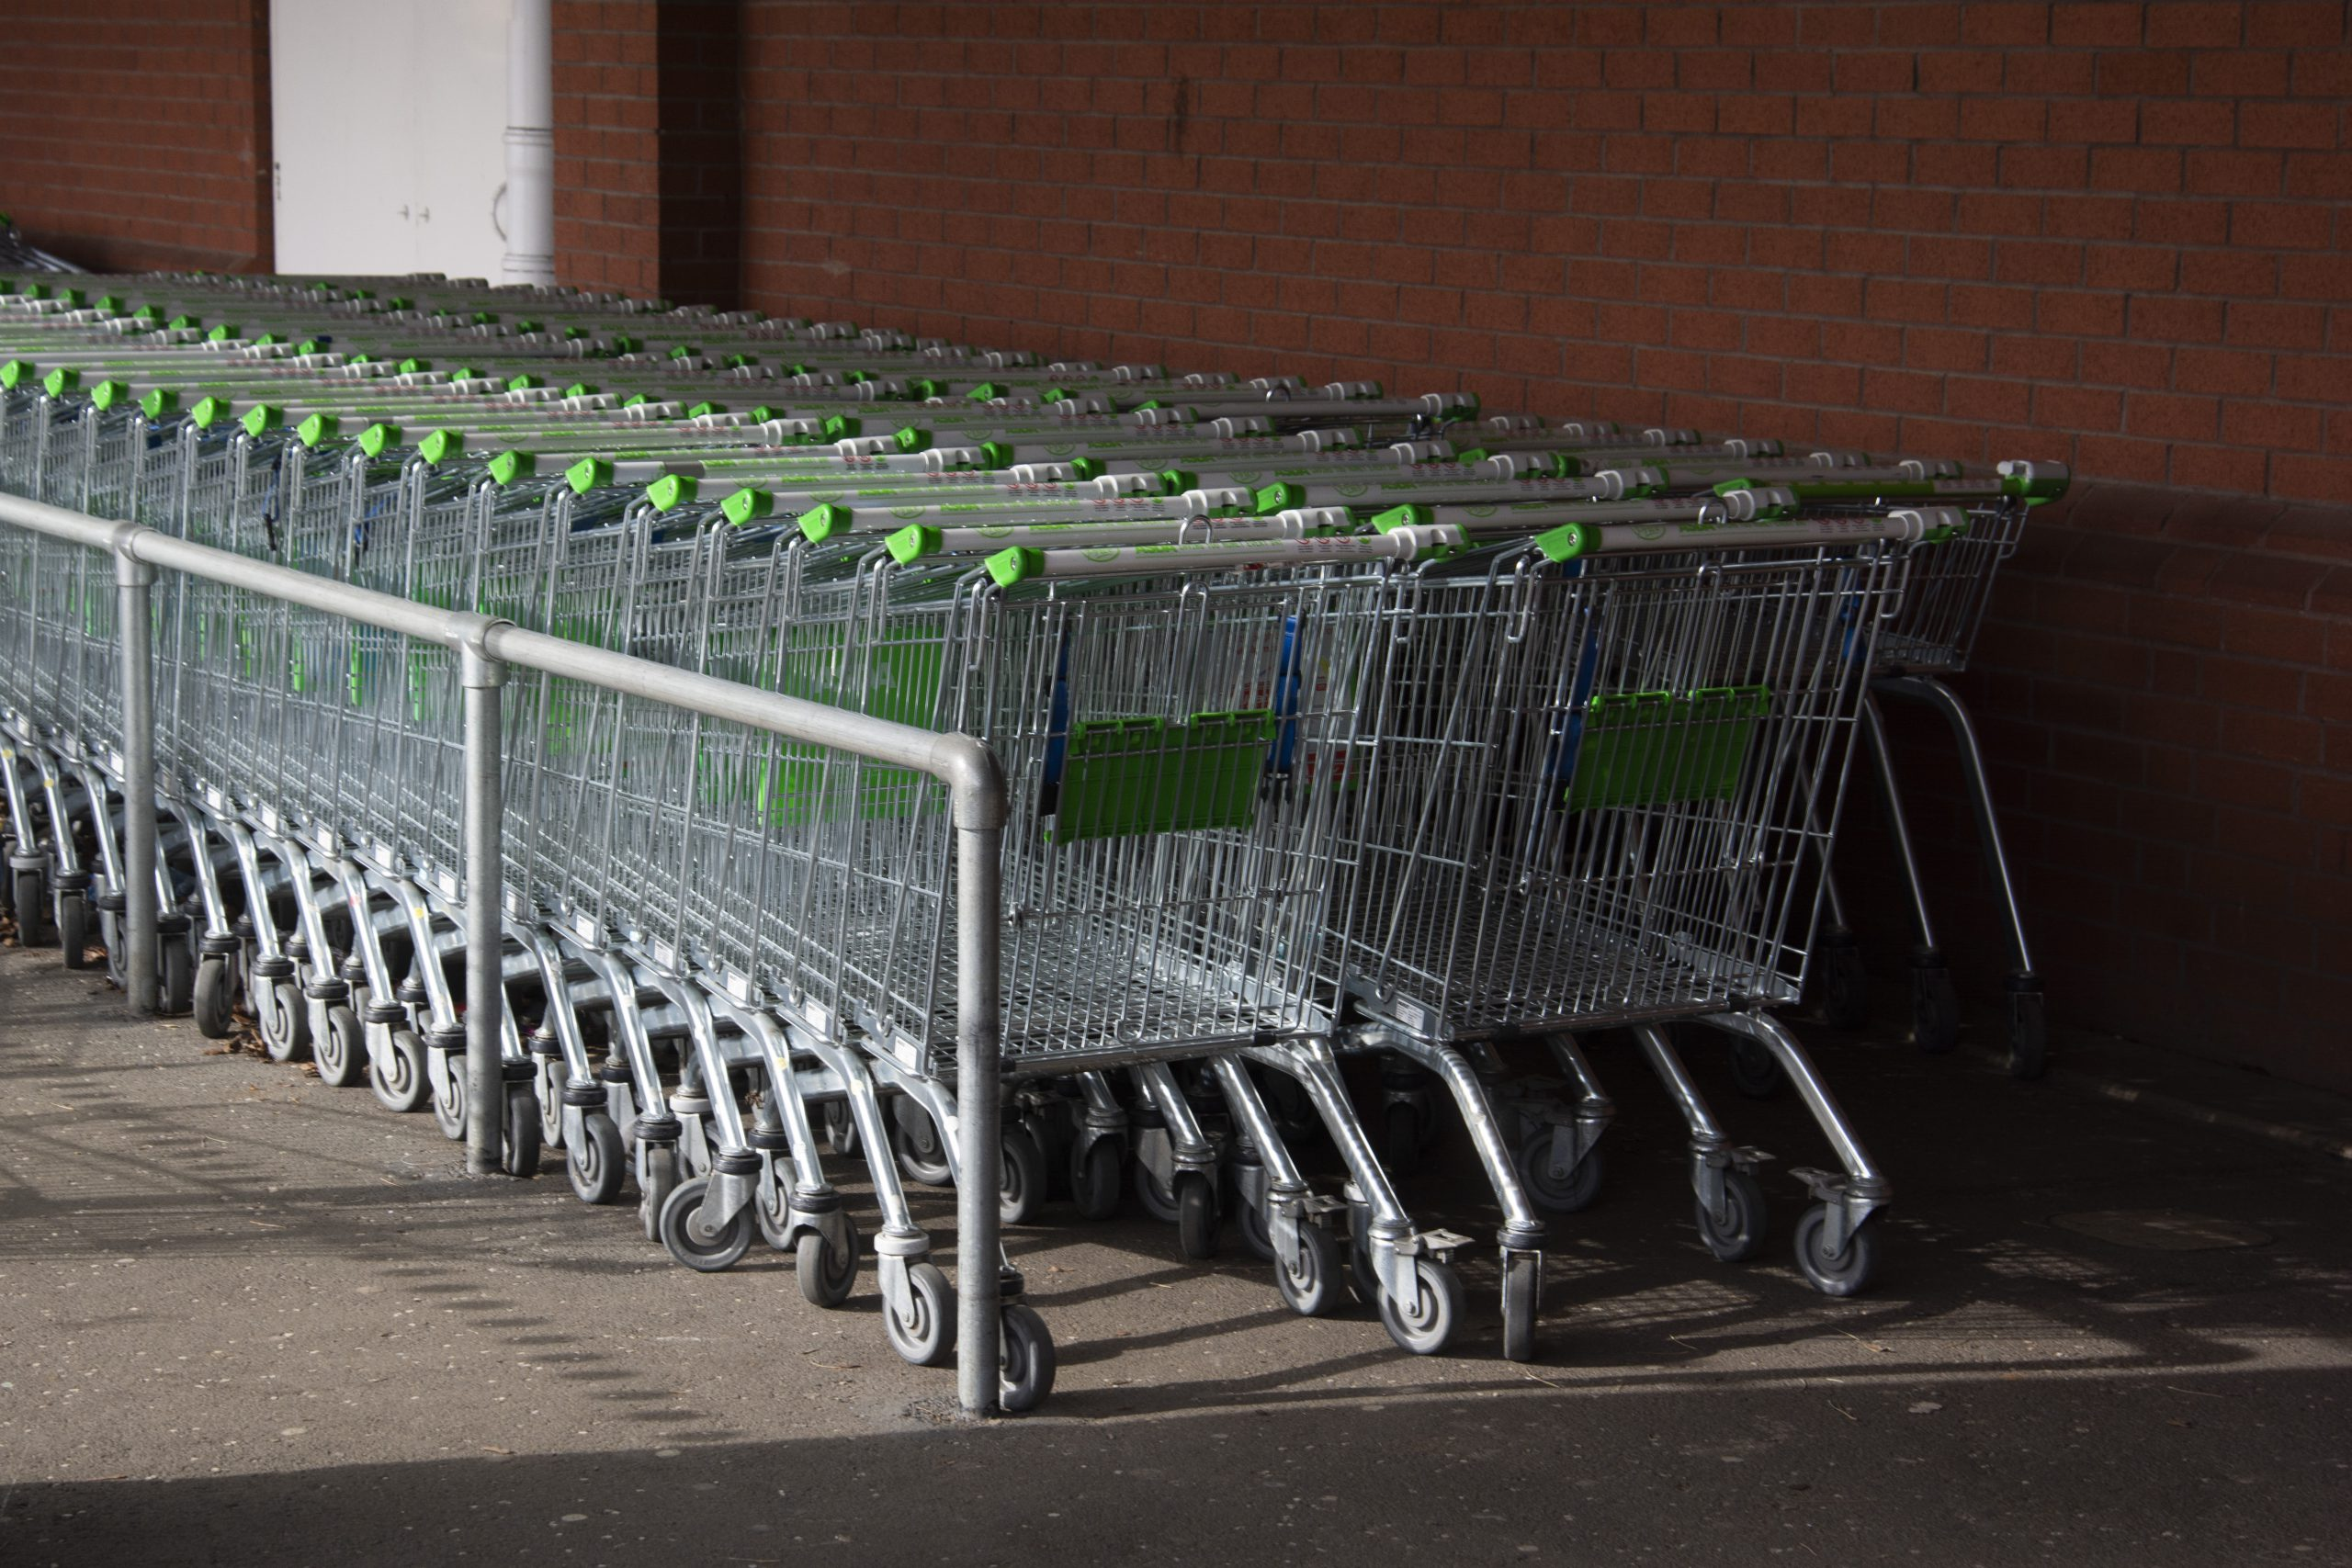 Asda loses first stage of equal pay claim: What this means for wage fairness in the workplace